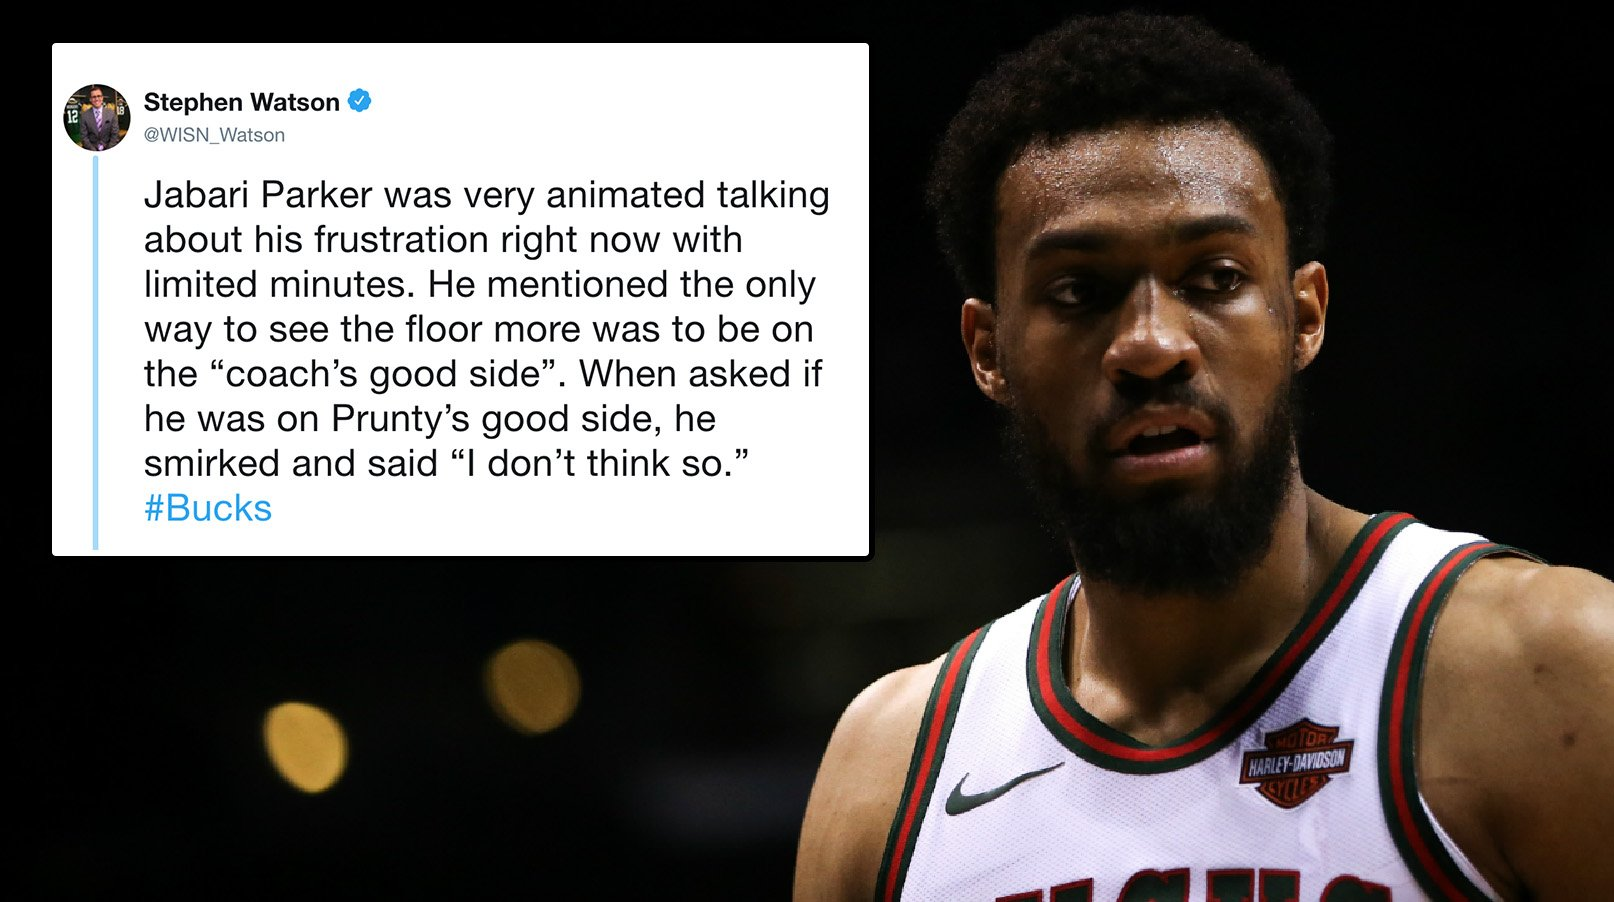 Jabari Parker unhappy with his playing time �� https://t.co/BHSfiXRW1E